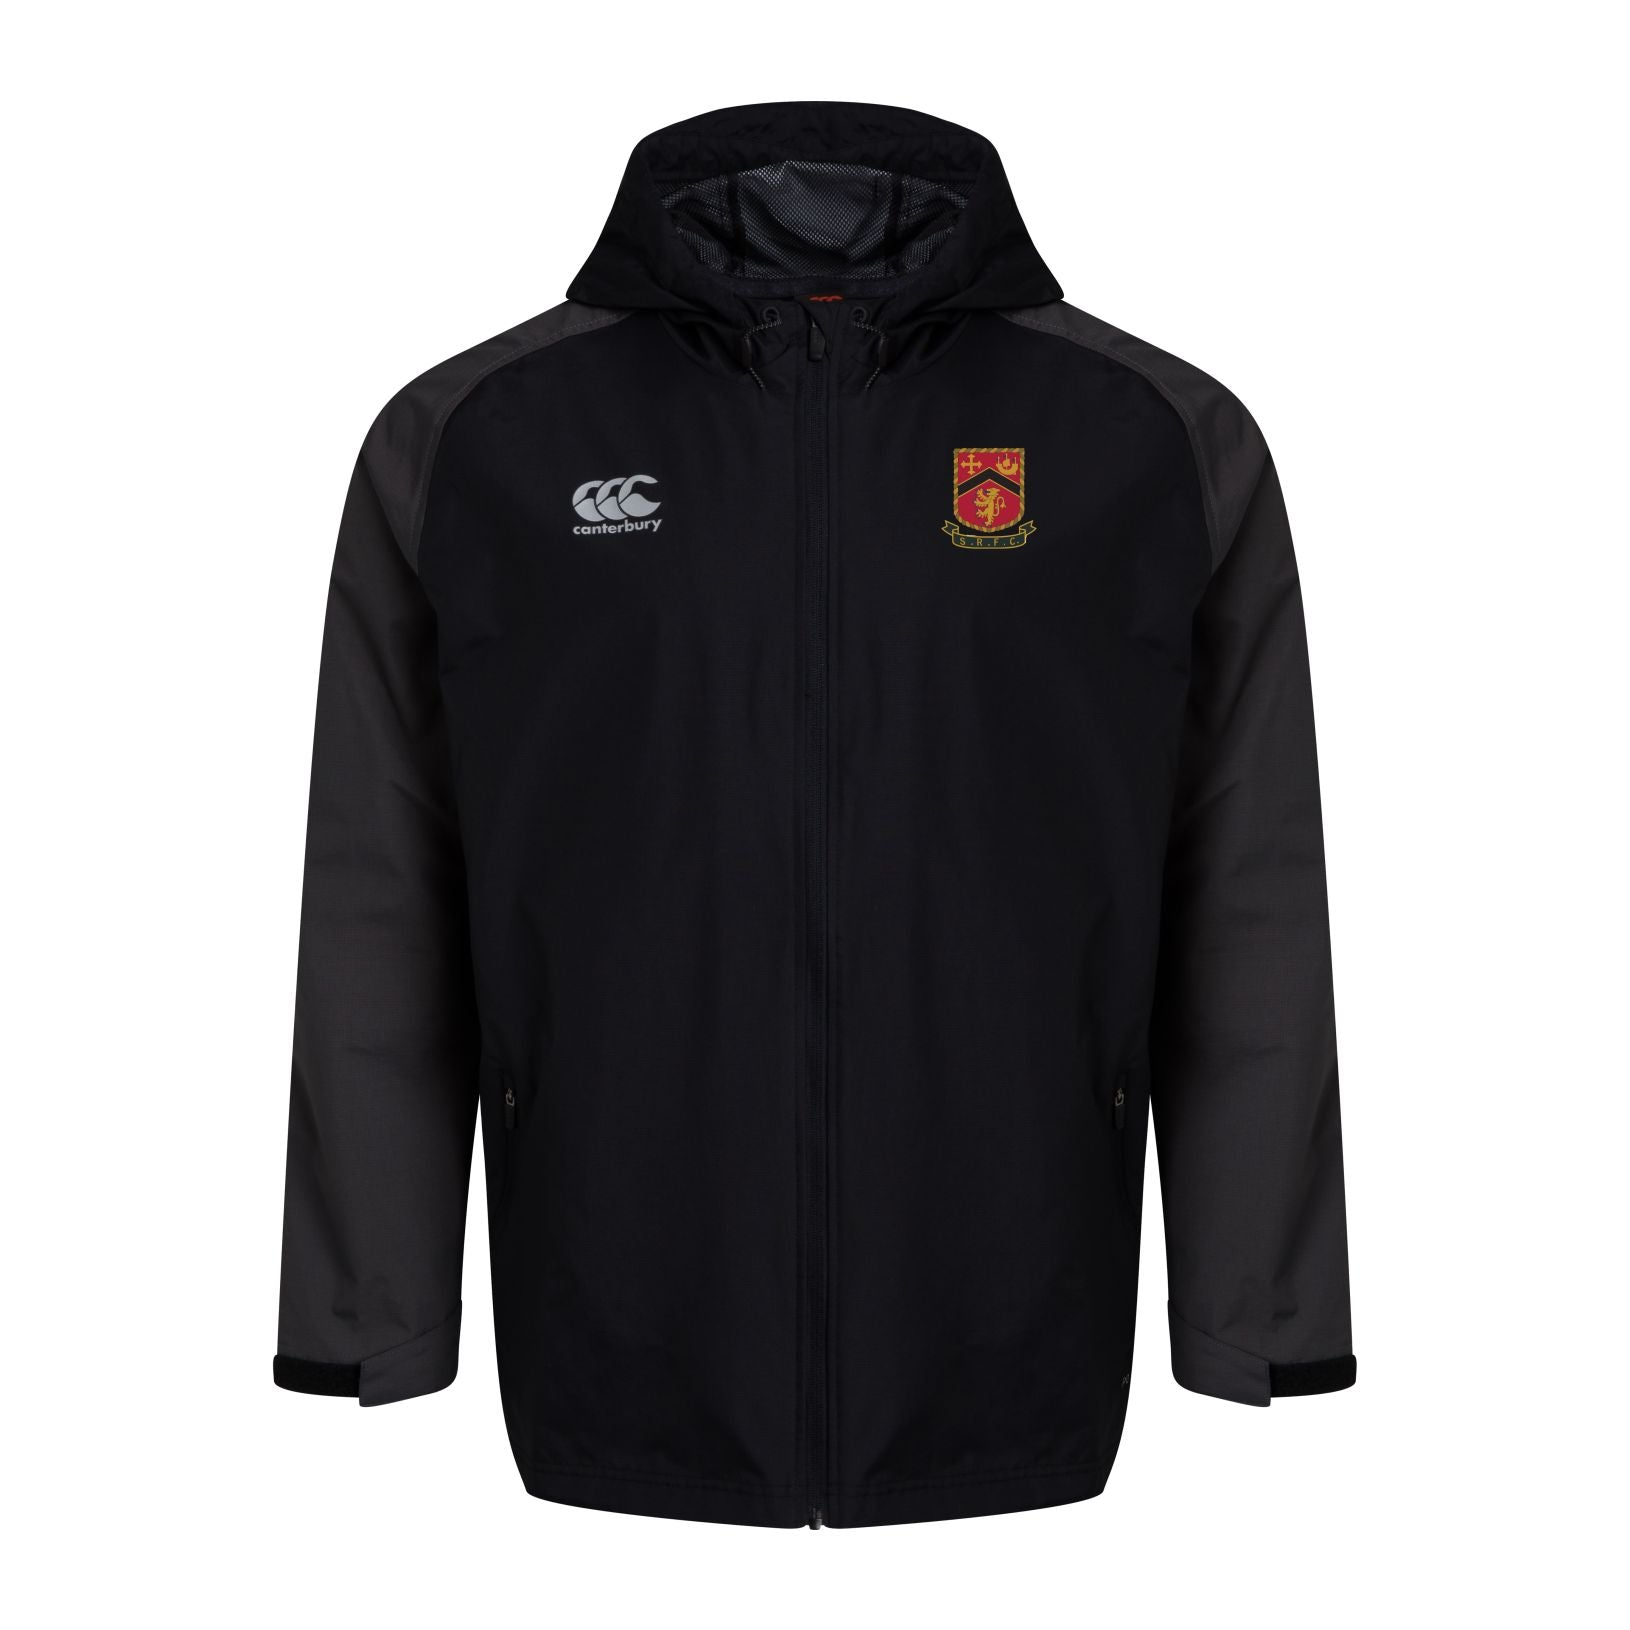 Sunderland RFC CCC Pro II Vaposhield Full Zip Jacket